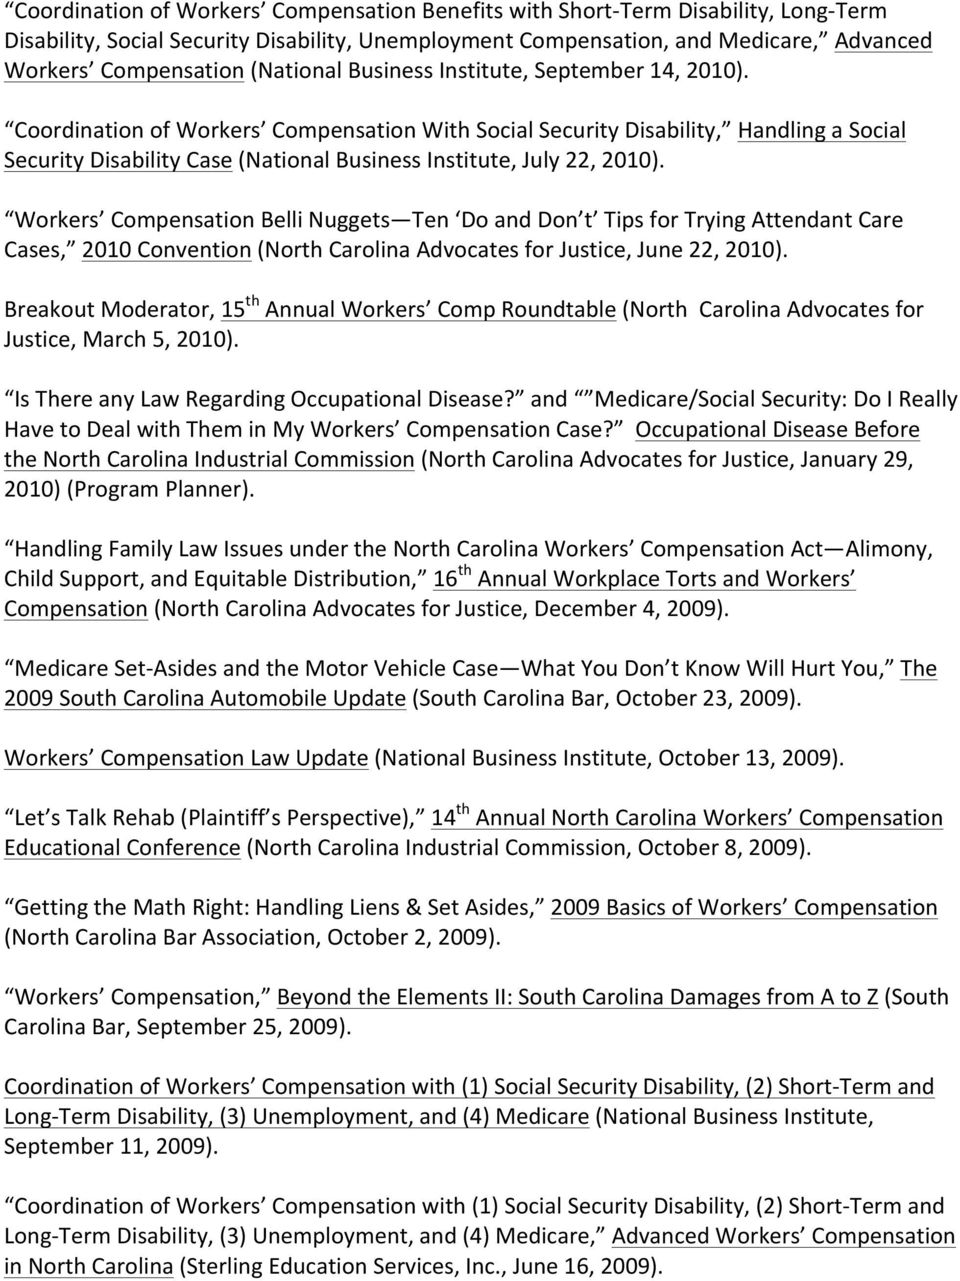 Coordination of Workers Compensation With Social Security Disability, Handling a Social Security Disability Case (National Business Institute, July 22, 2010).